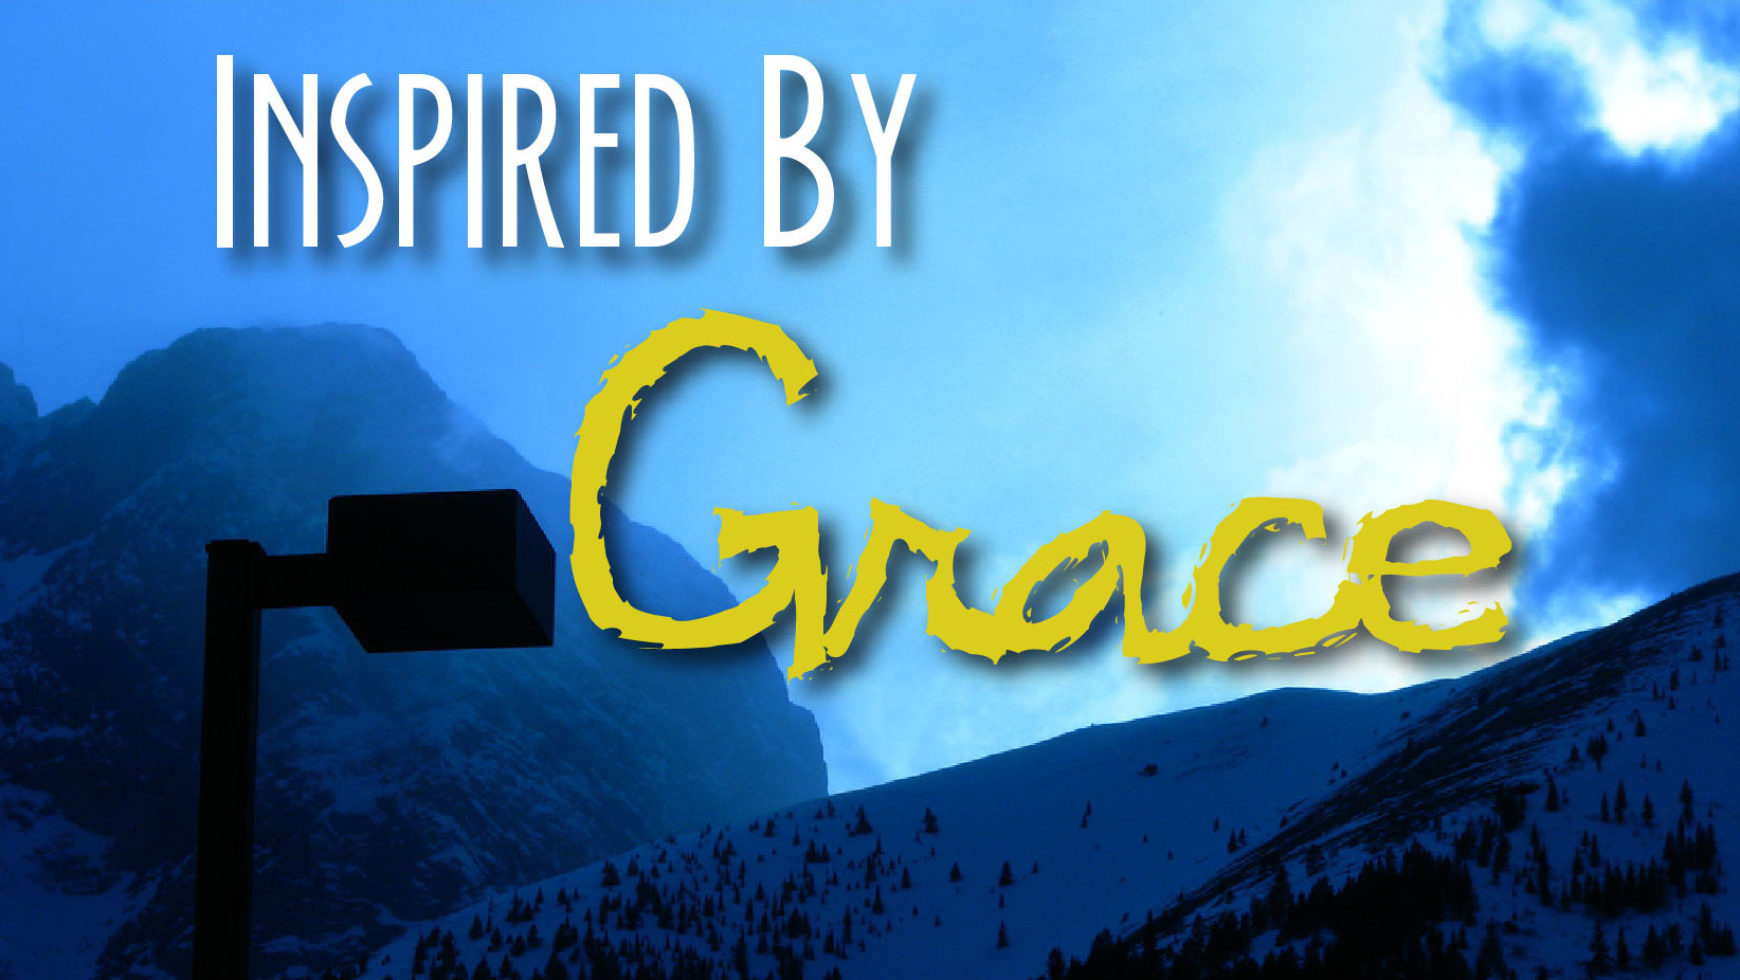 Inspired by grace